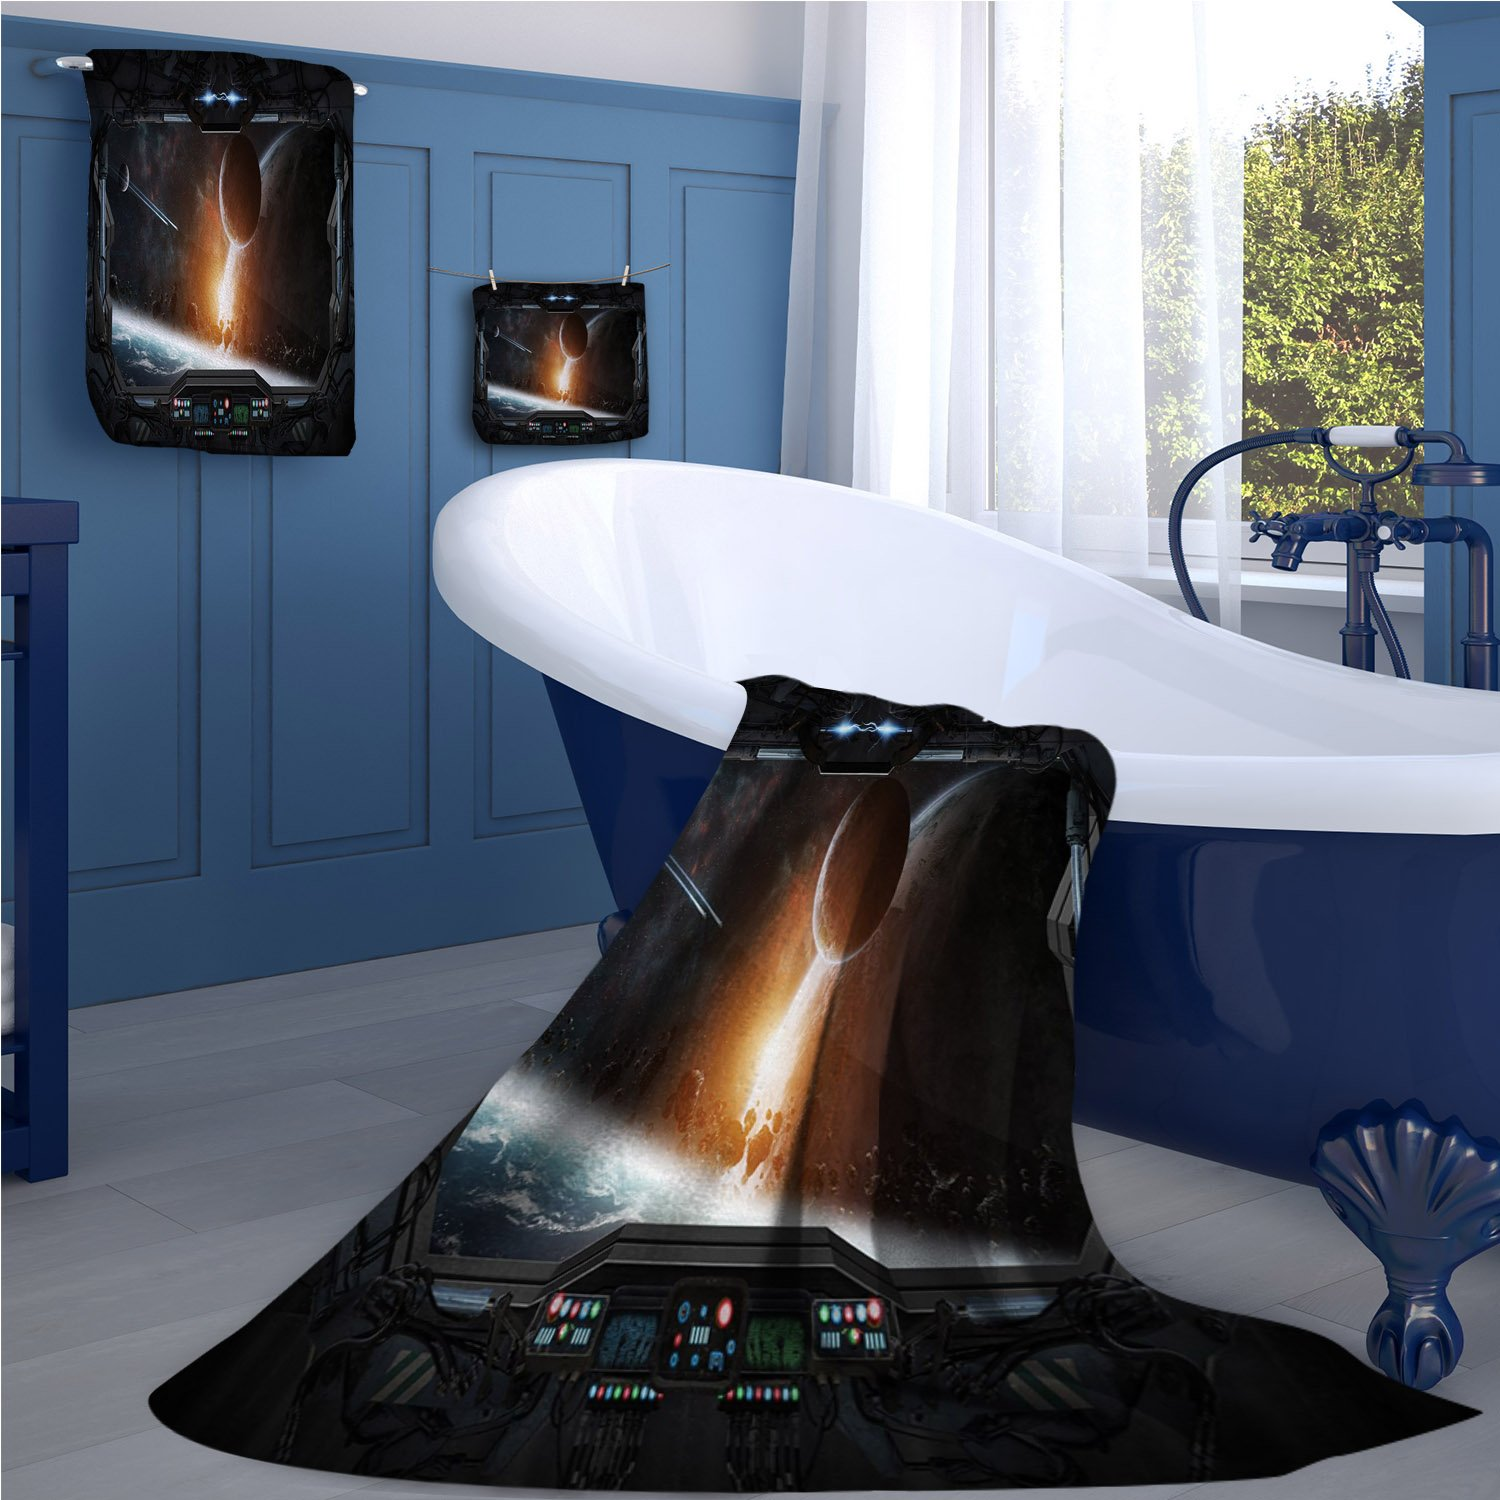 familytaste Outer Space Bath towel 707D digital printing set Scenery of Planets from the Window of a Shuttle Bodies Astronaut Space Station bathroom hand towels set Gray Orange